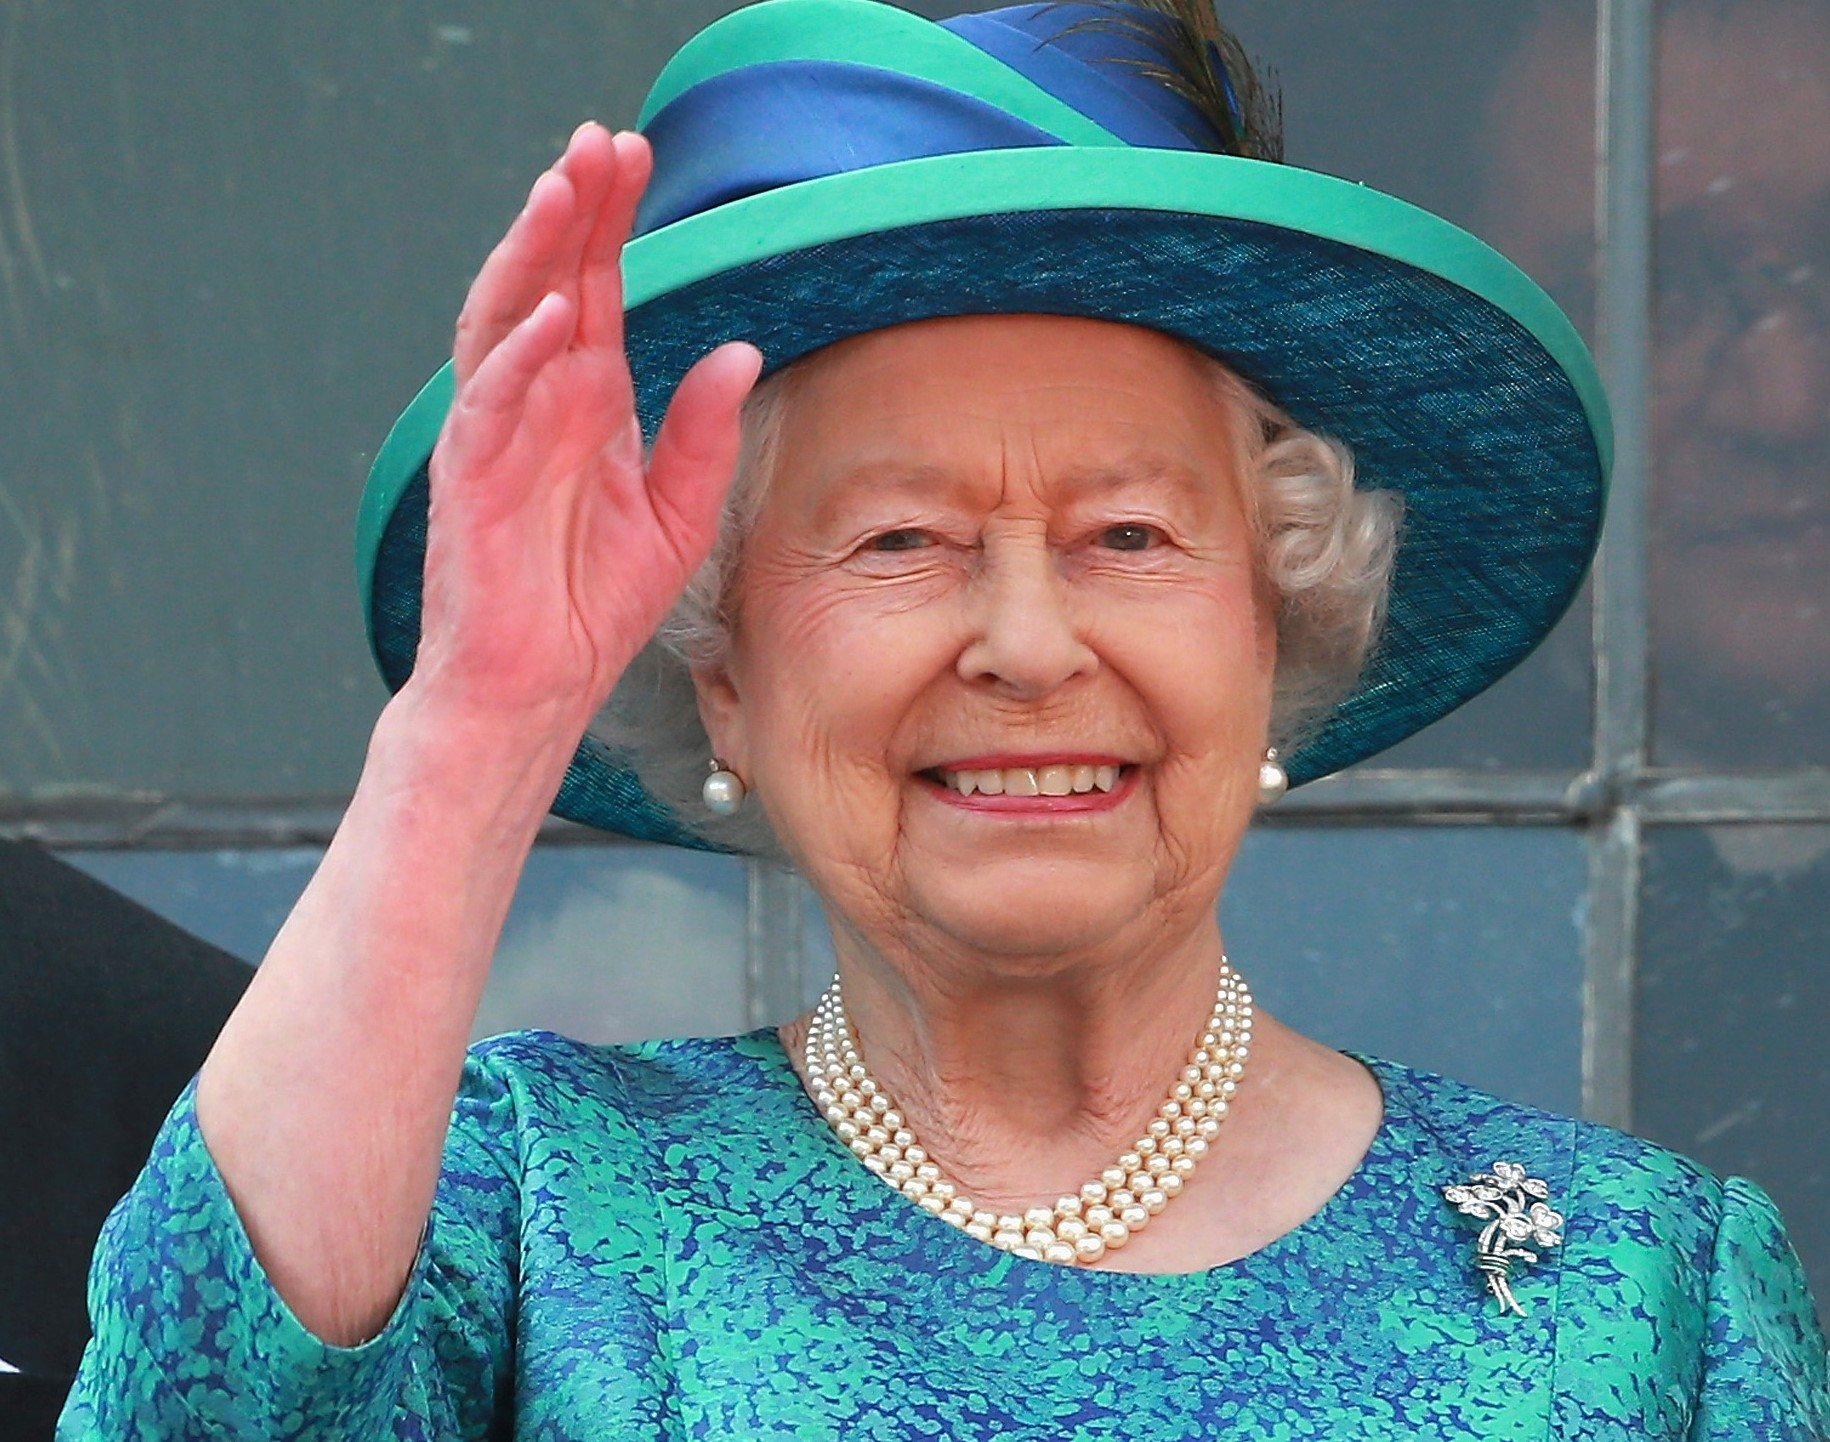 Queen Elizabeth II waving